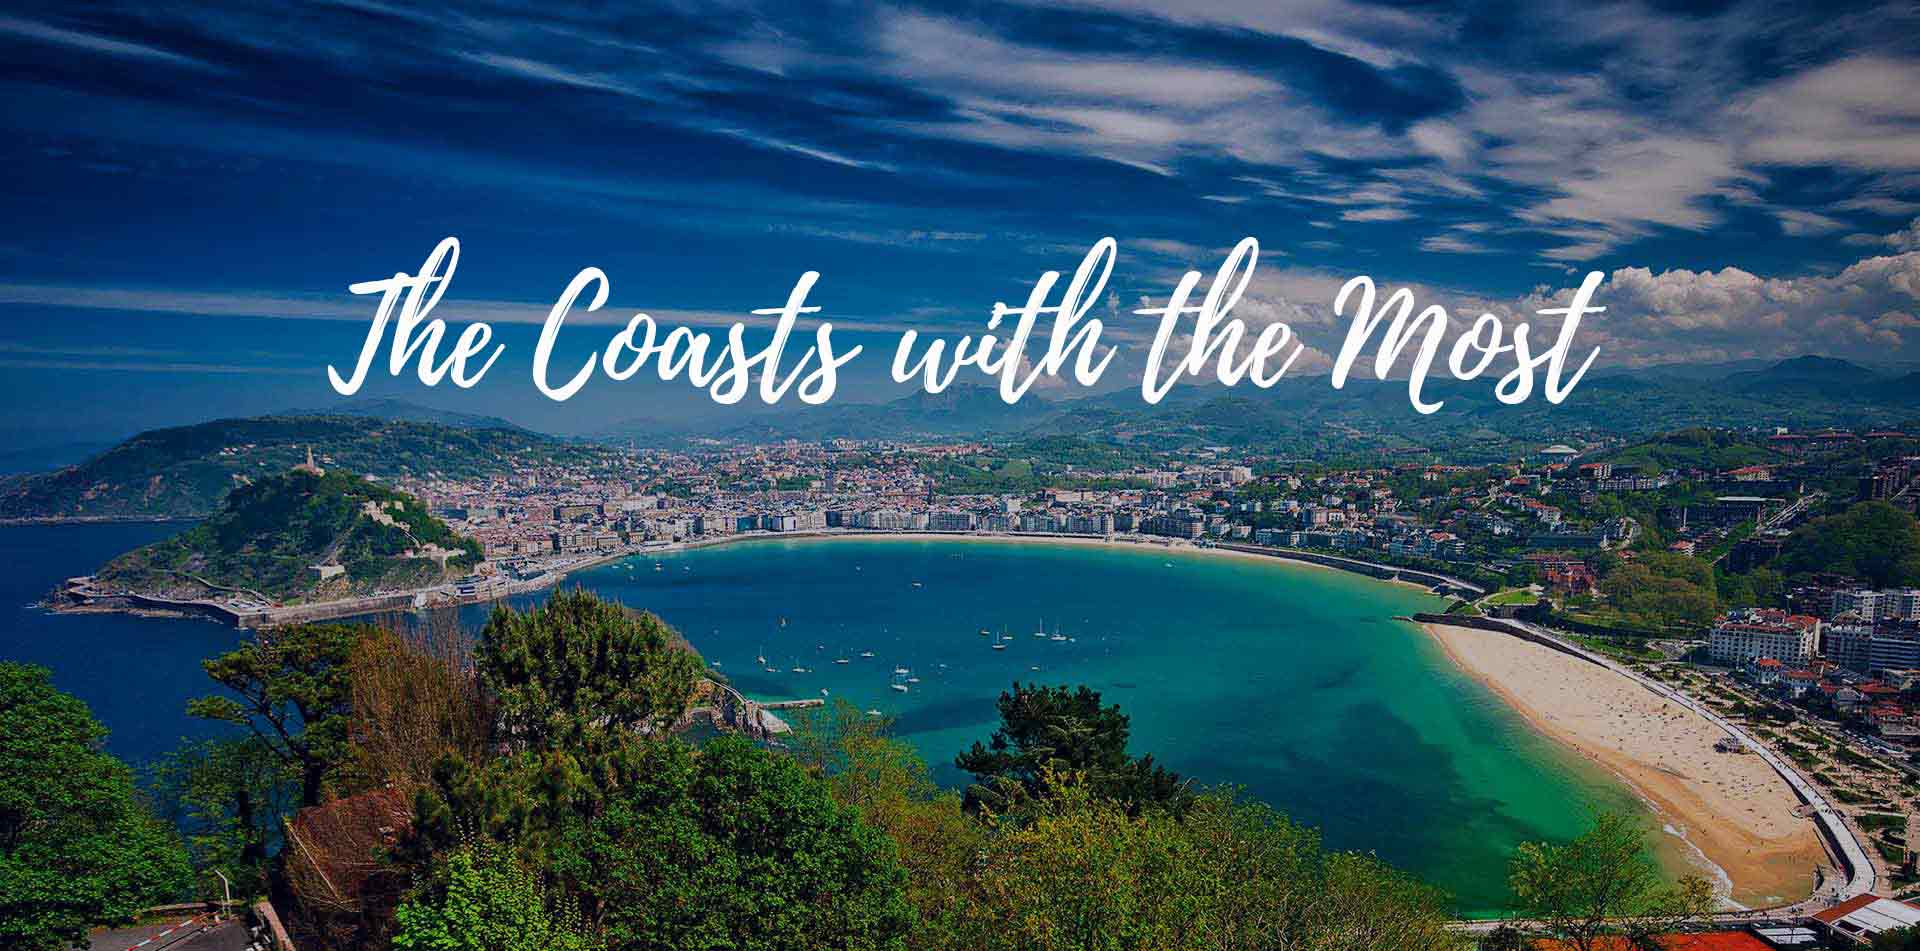 Europe Spain Basque scenic San Sebastian beautiful aqua water the coasts with the most - luxury vacation destinations